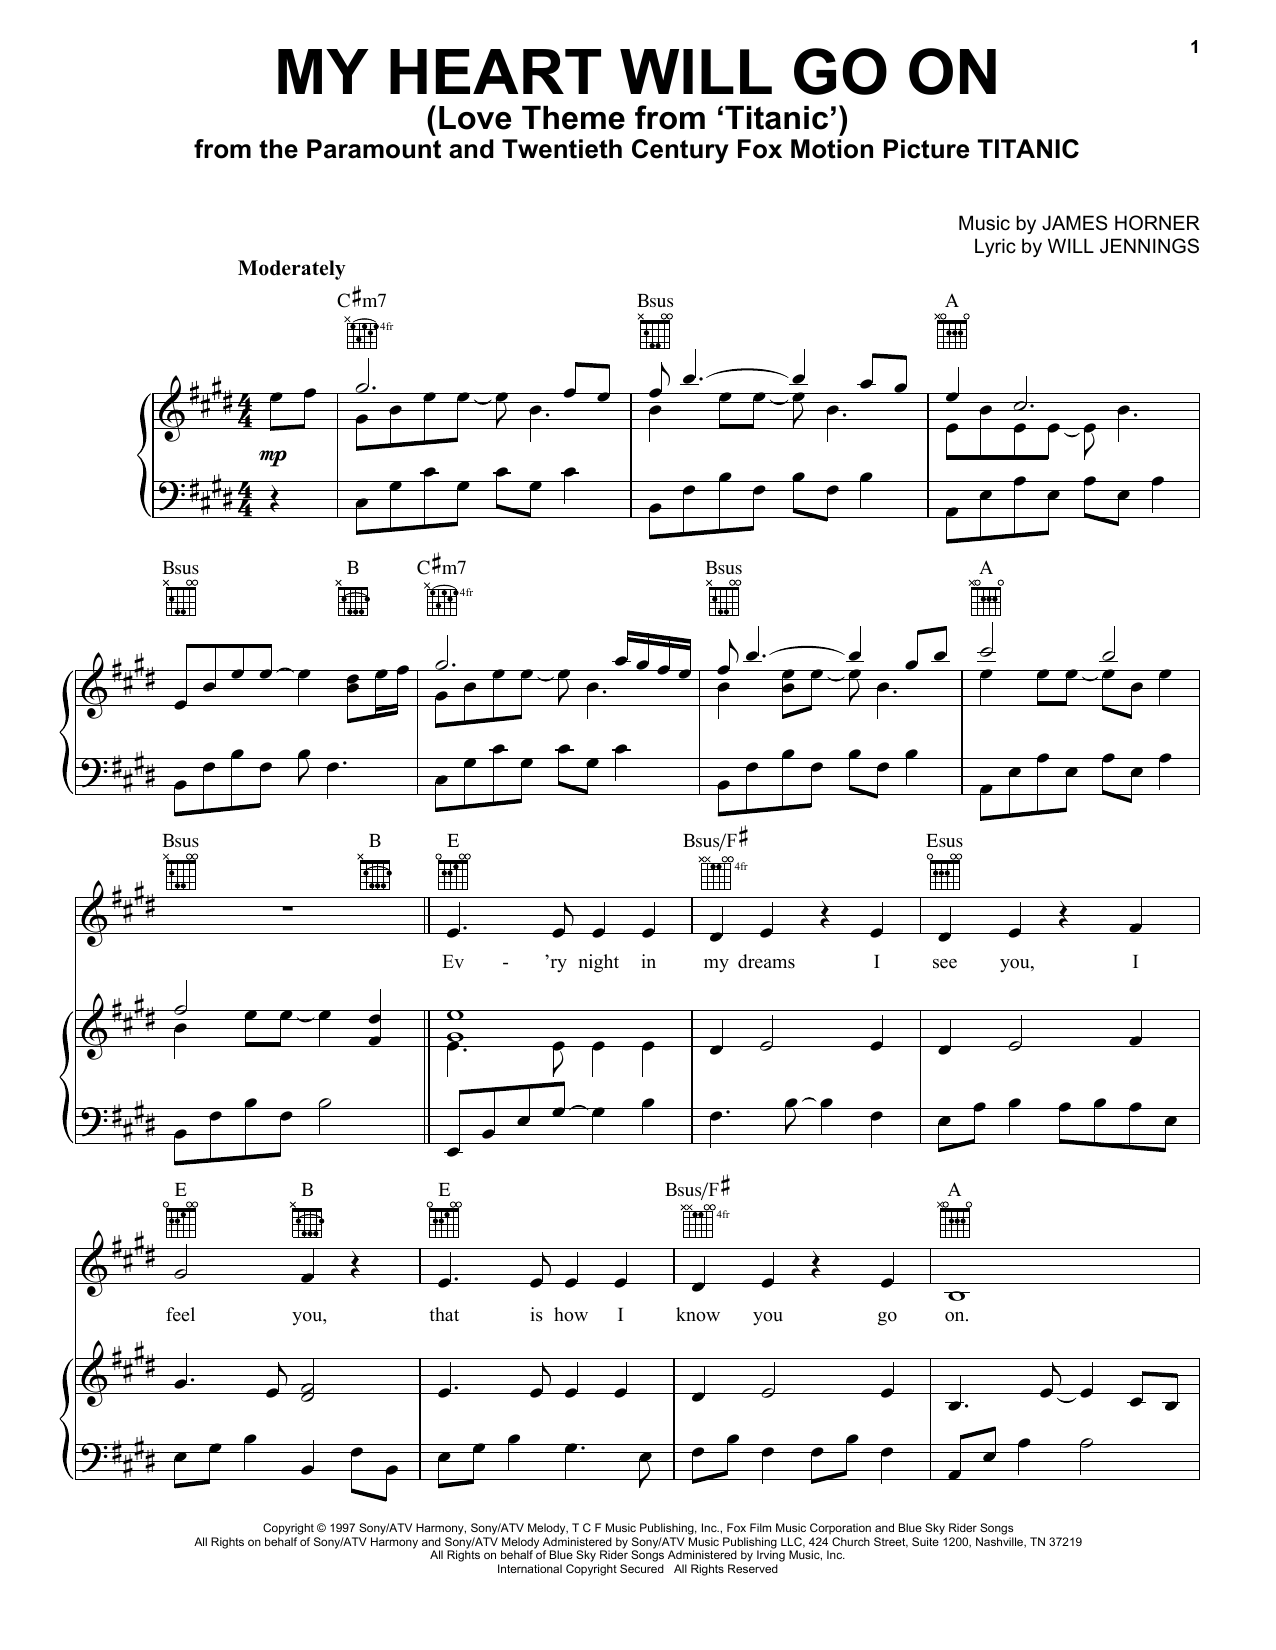 Celine Dion My Heart Will Go On Love Theme From Titanic Sheet Music Notes Chords Score Download Printable Pdf Sheet Music Notes Pop Piano Sheet Music Hymn Sheet Music